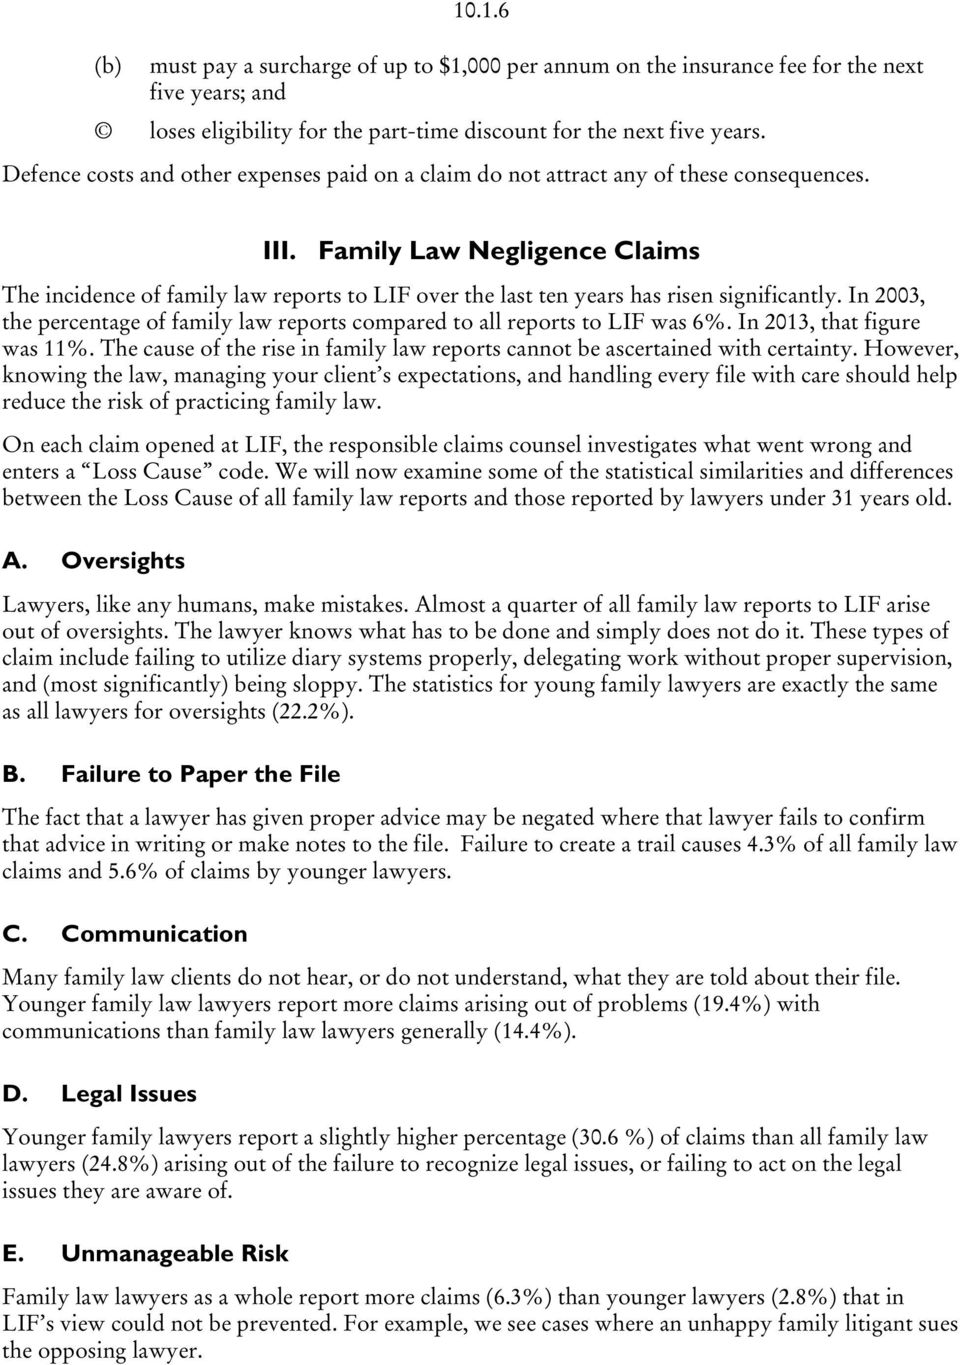 Family Law Negligence Claims The incidence of family law reports to LIF over the last ten years has risen significantly.